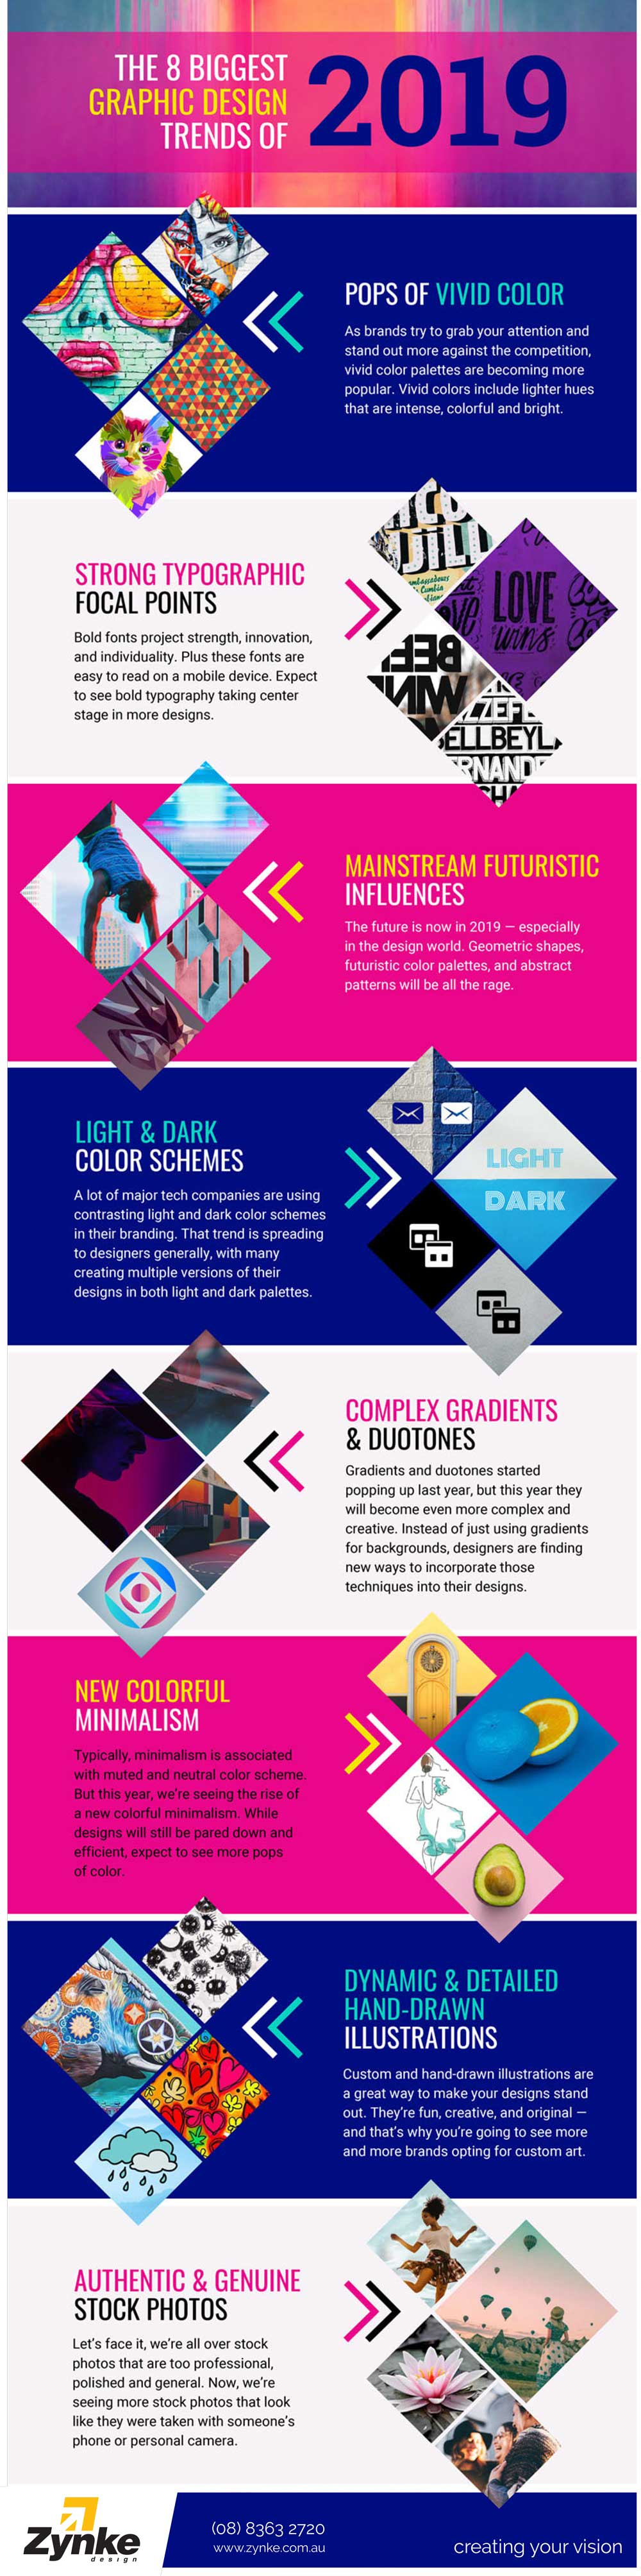 zynke-2019-8-biggest-graphic-design-trends